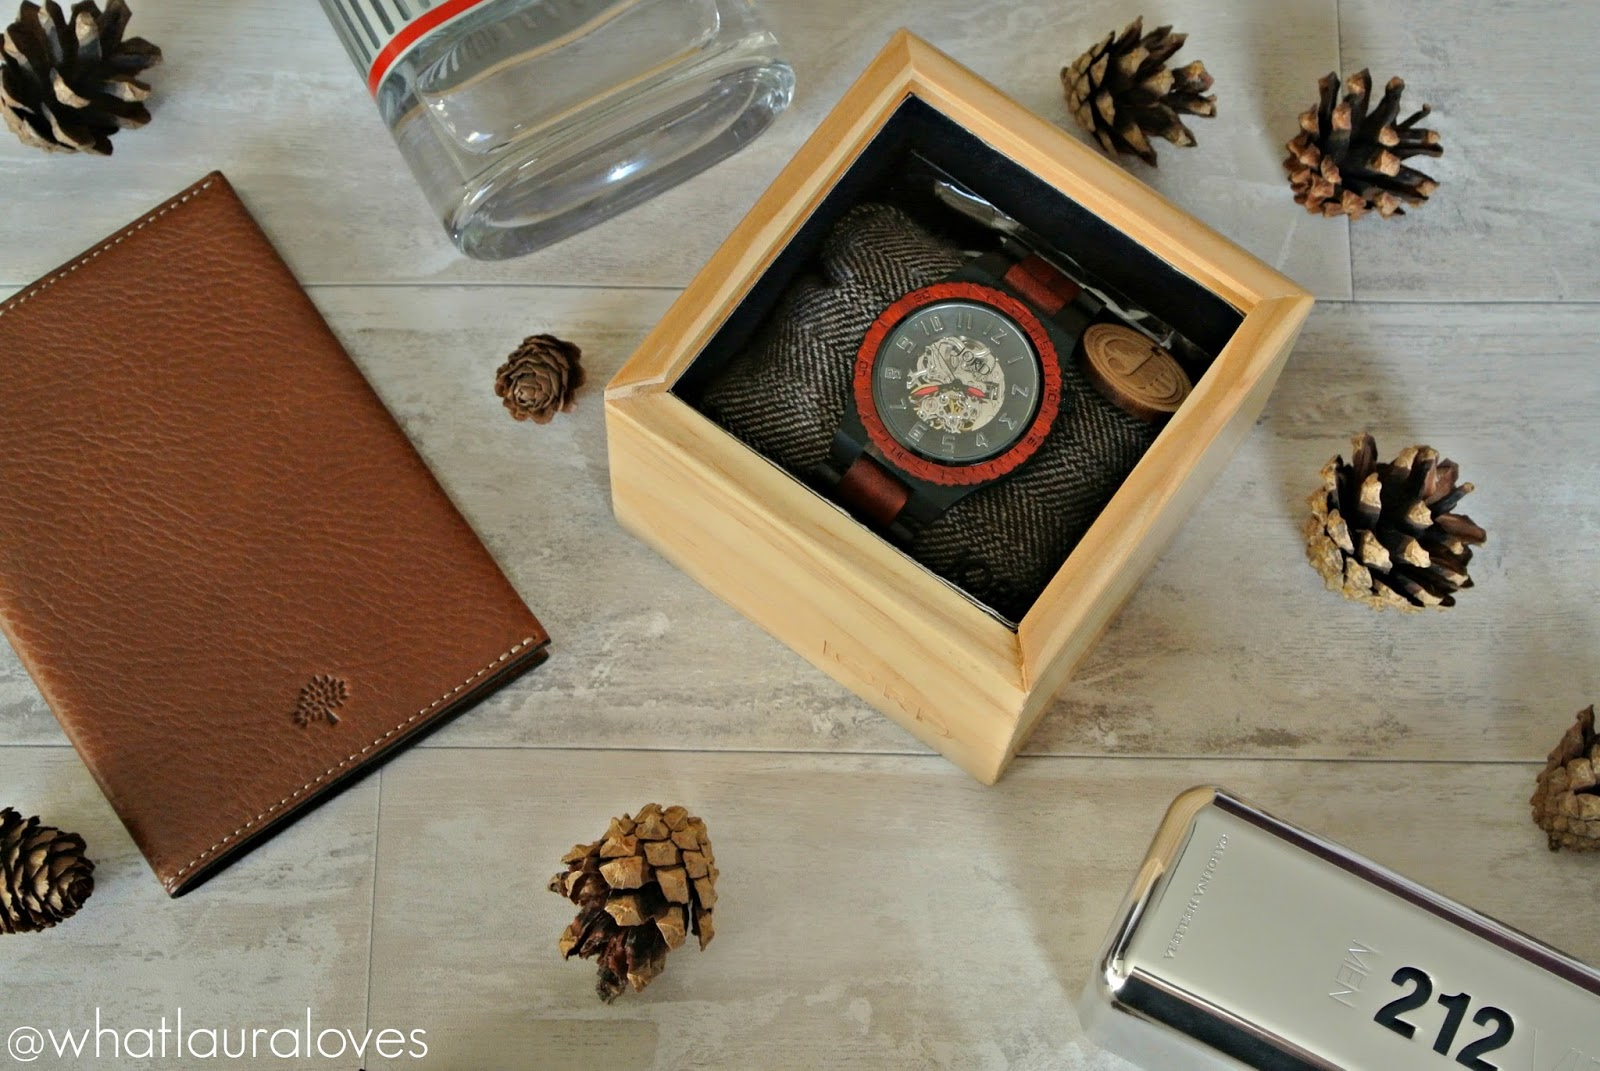 Jord Wood Watches Dover Ebony and Rosewood Watch Review Mens Christmas Gift Prada 121 Aftershave EDT Mulberry Passport Holder